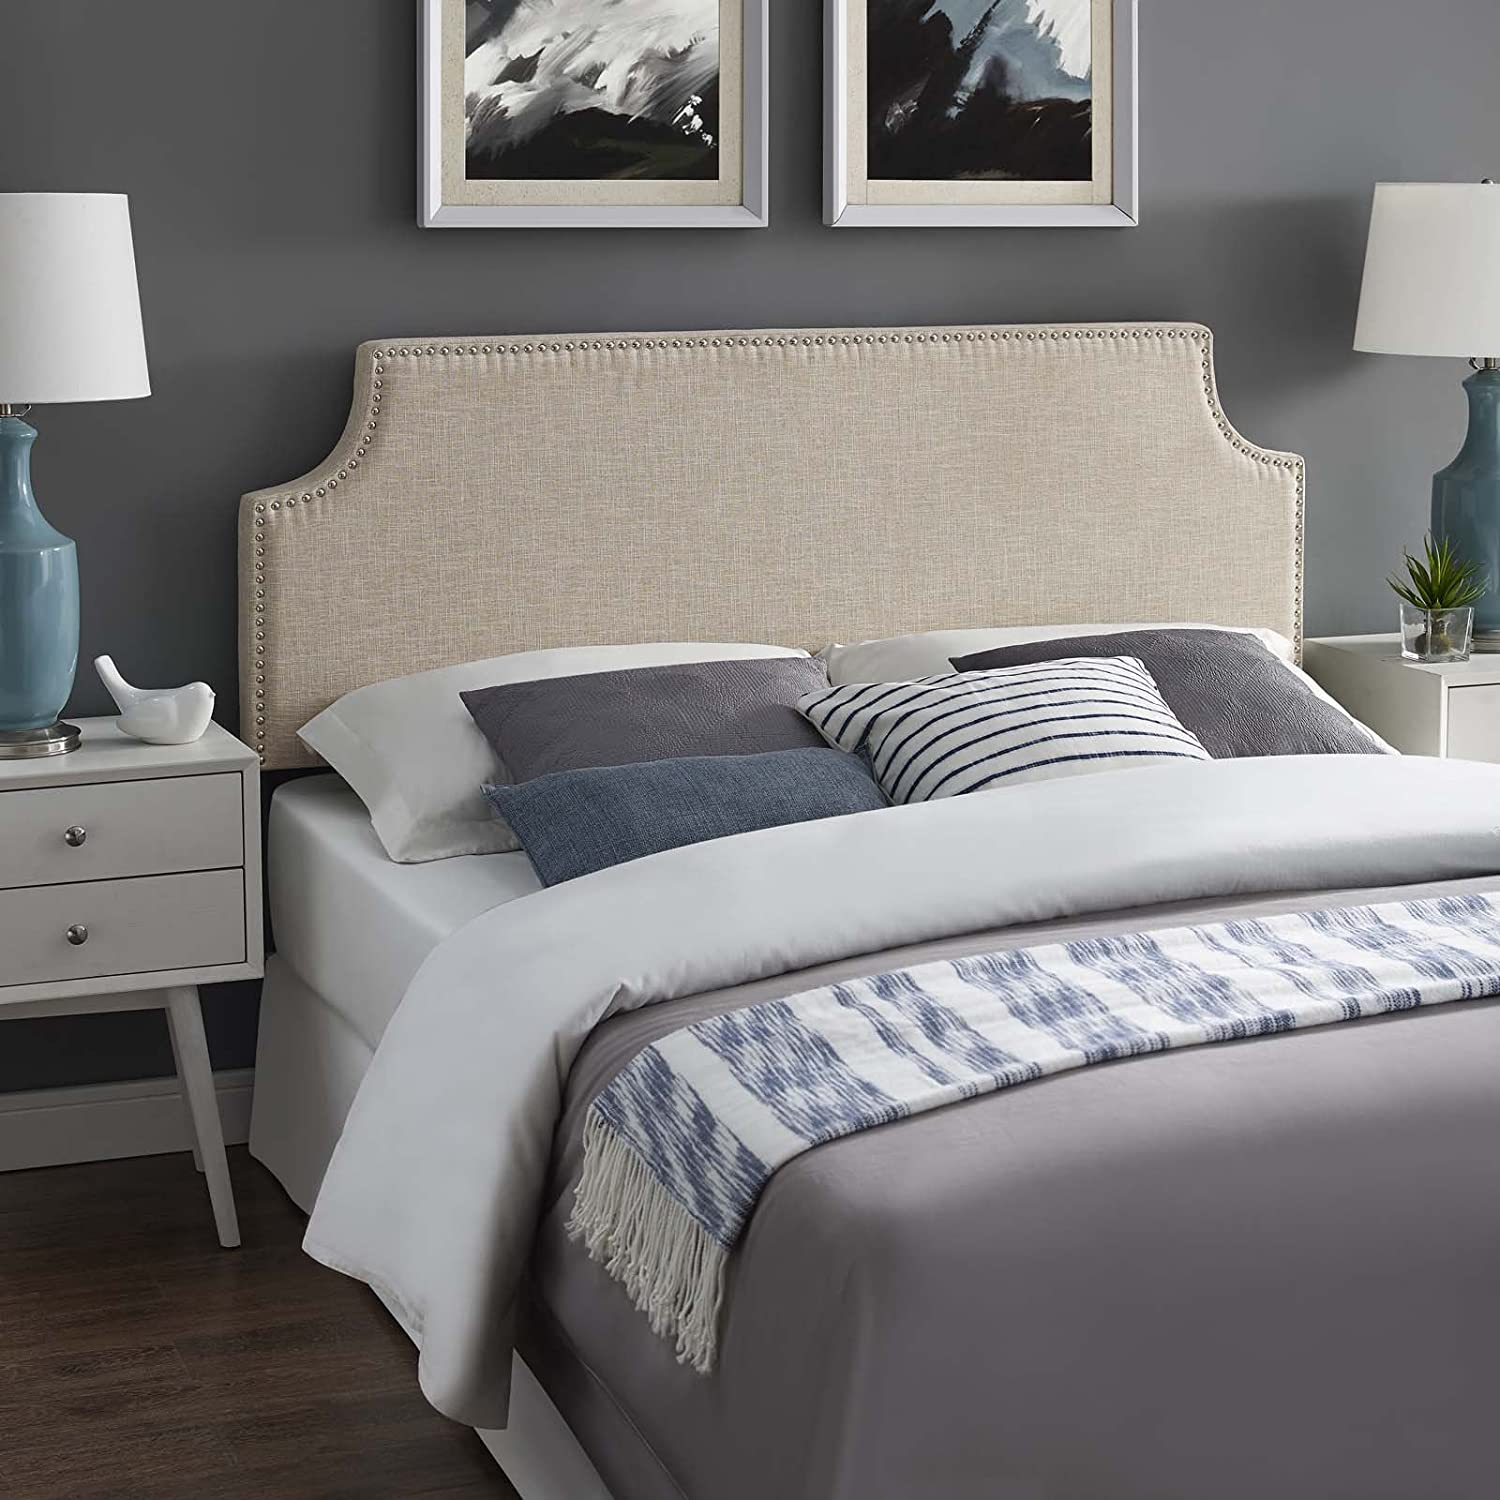 Modway Laura Linen Fabric Upholstered King Size Headboard with Cut-Out Edges and Nailhead Trim in Beige